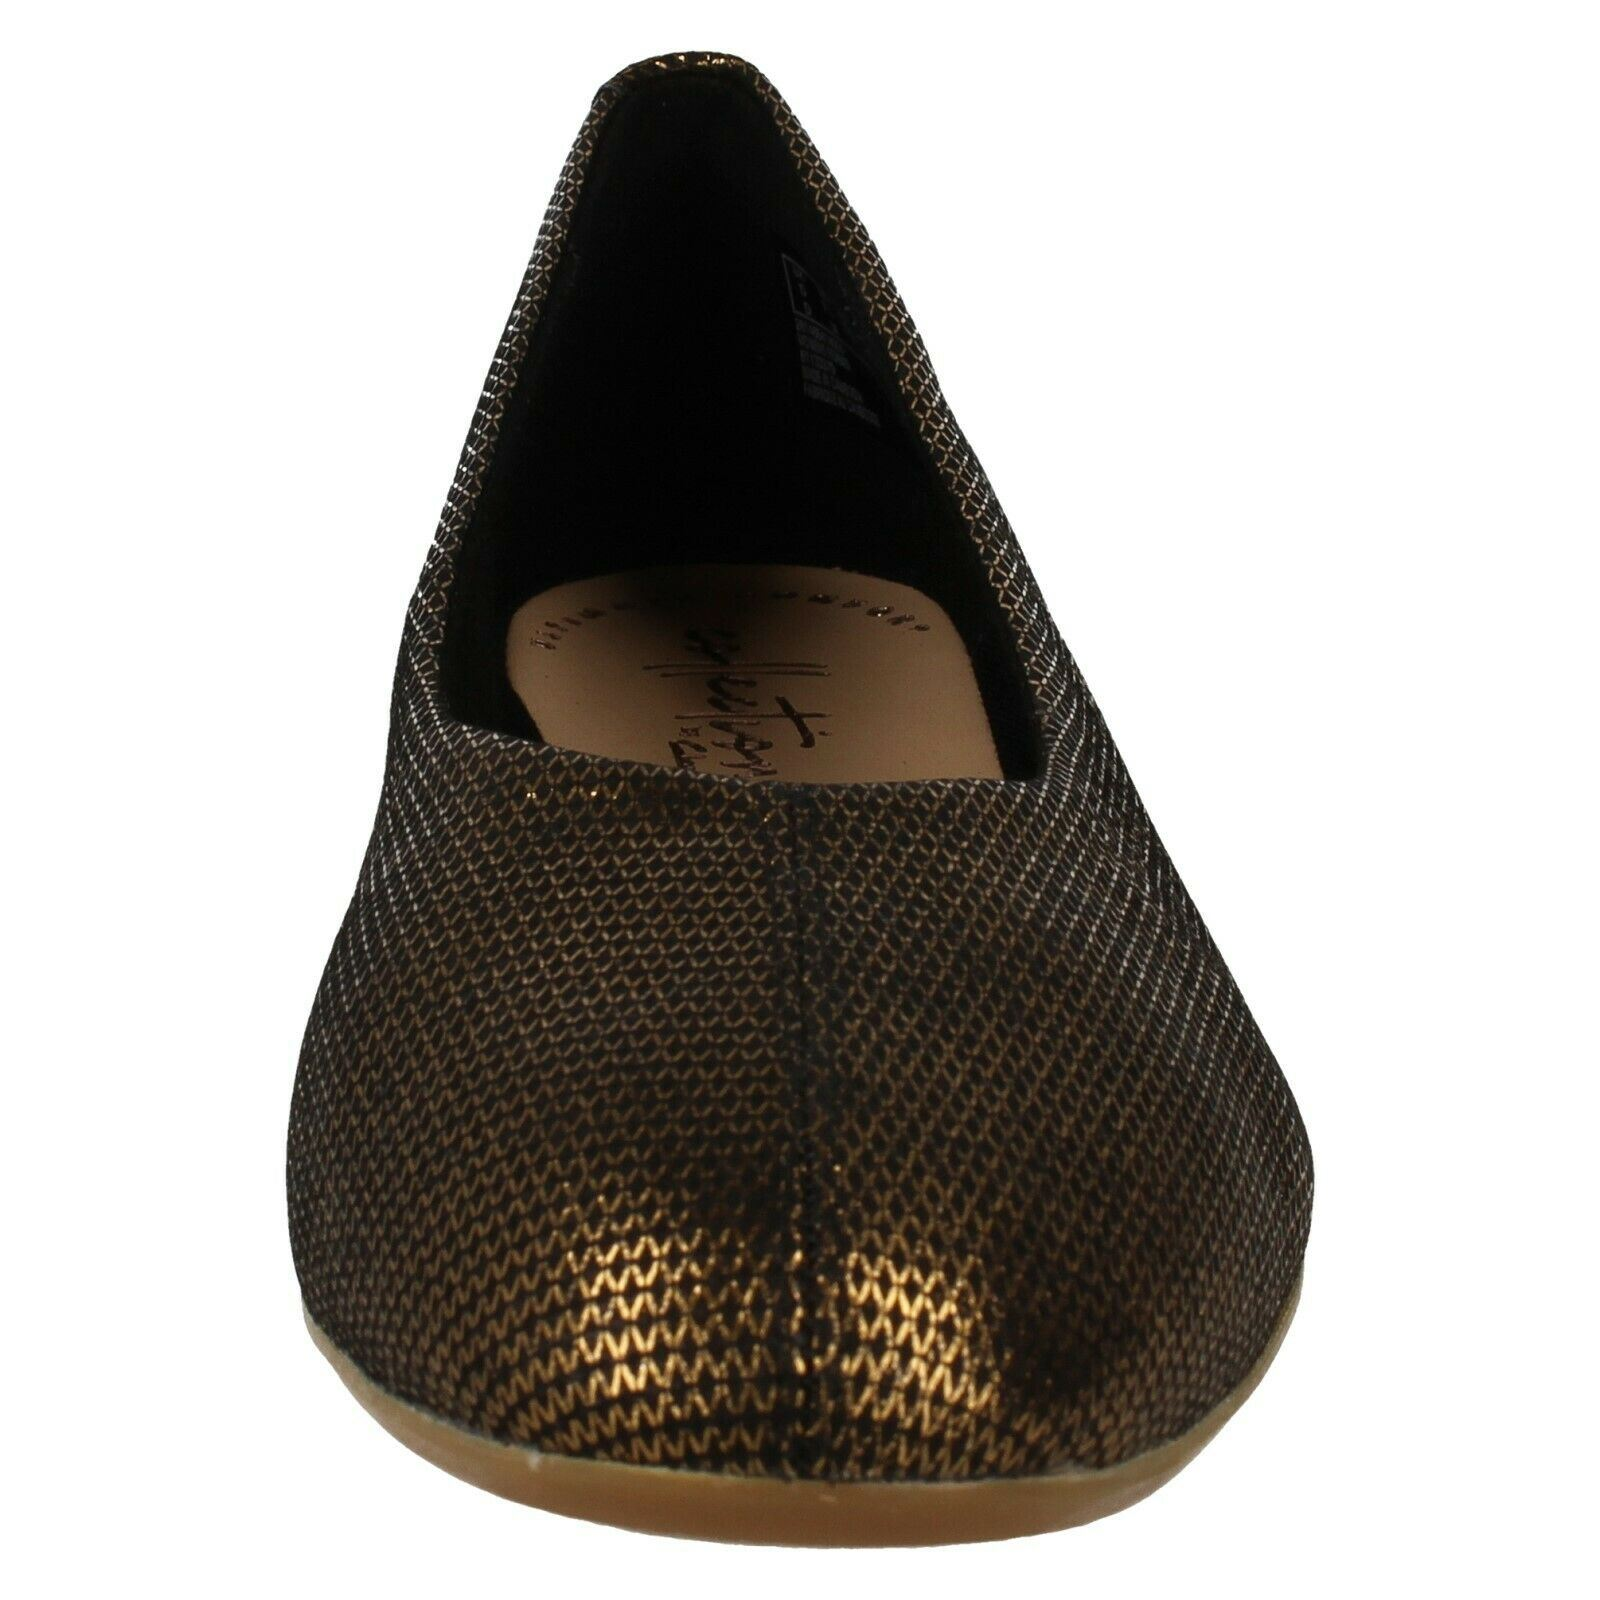 LADIES CLARKS LEATHER SQUARE TOE SLIP ON FLAT BALLERINA PUMPS SHOES CHIA MOON